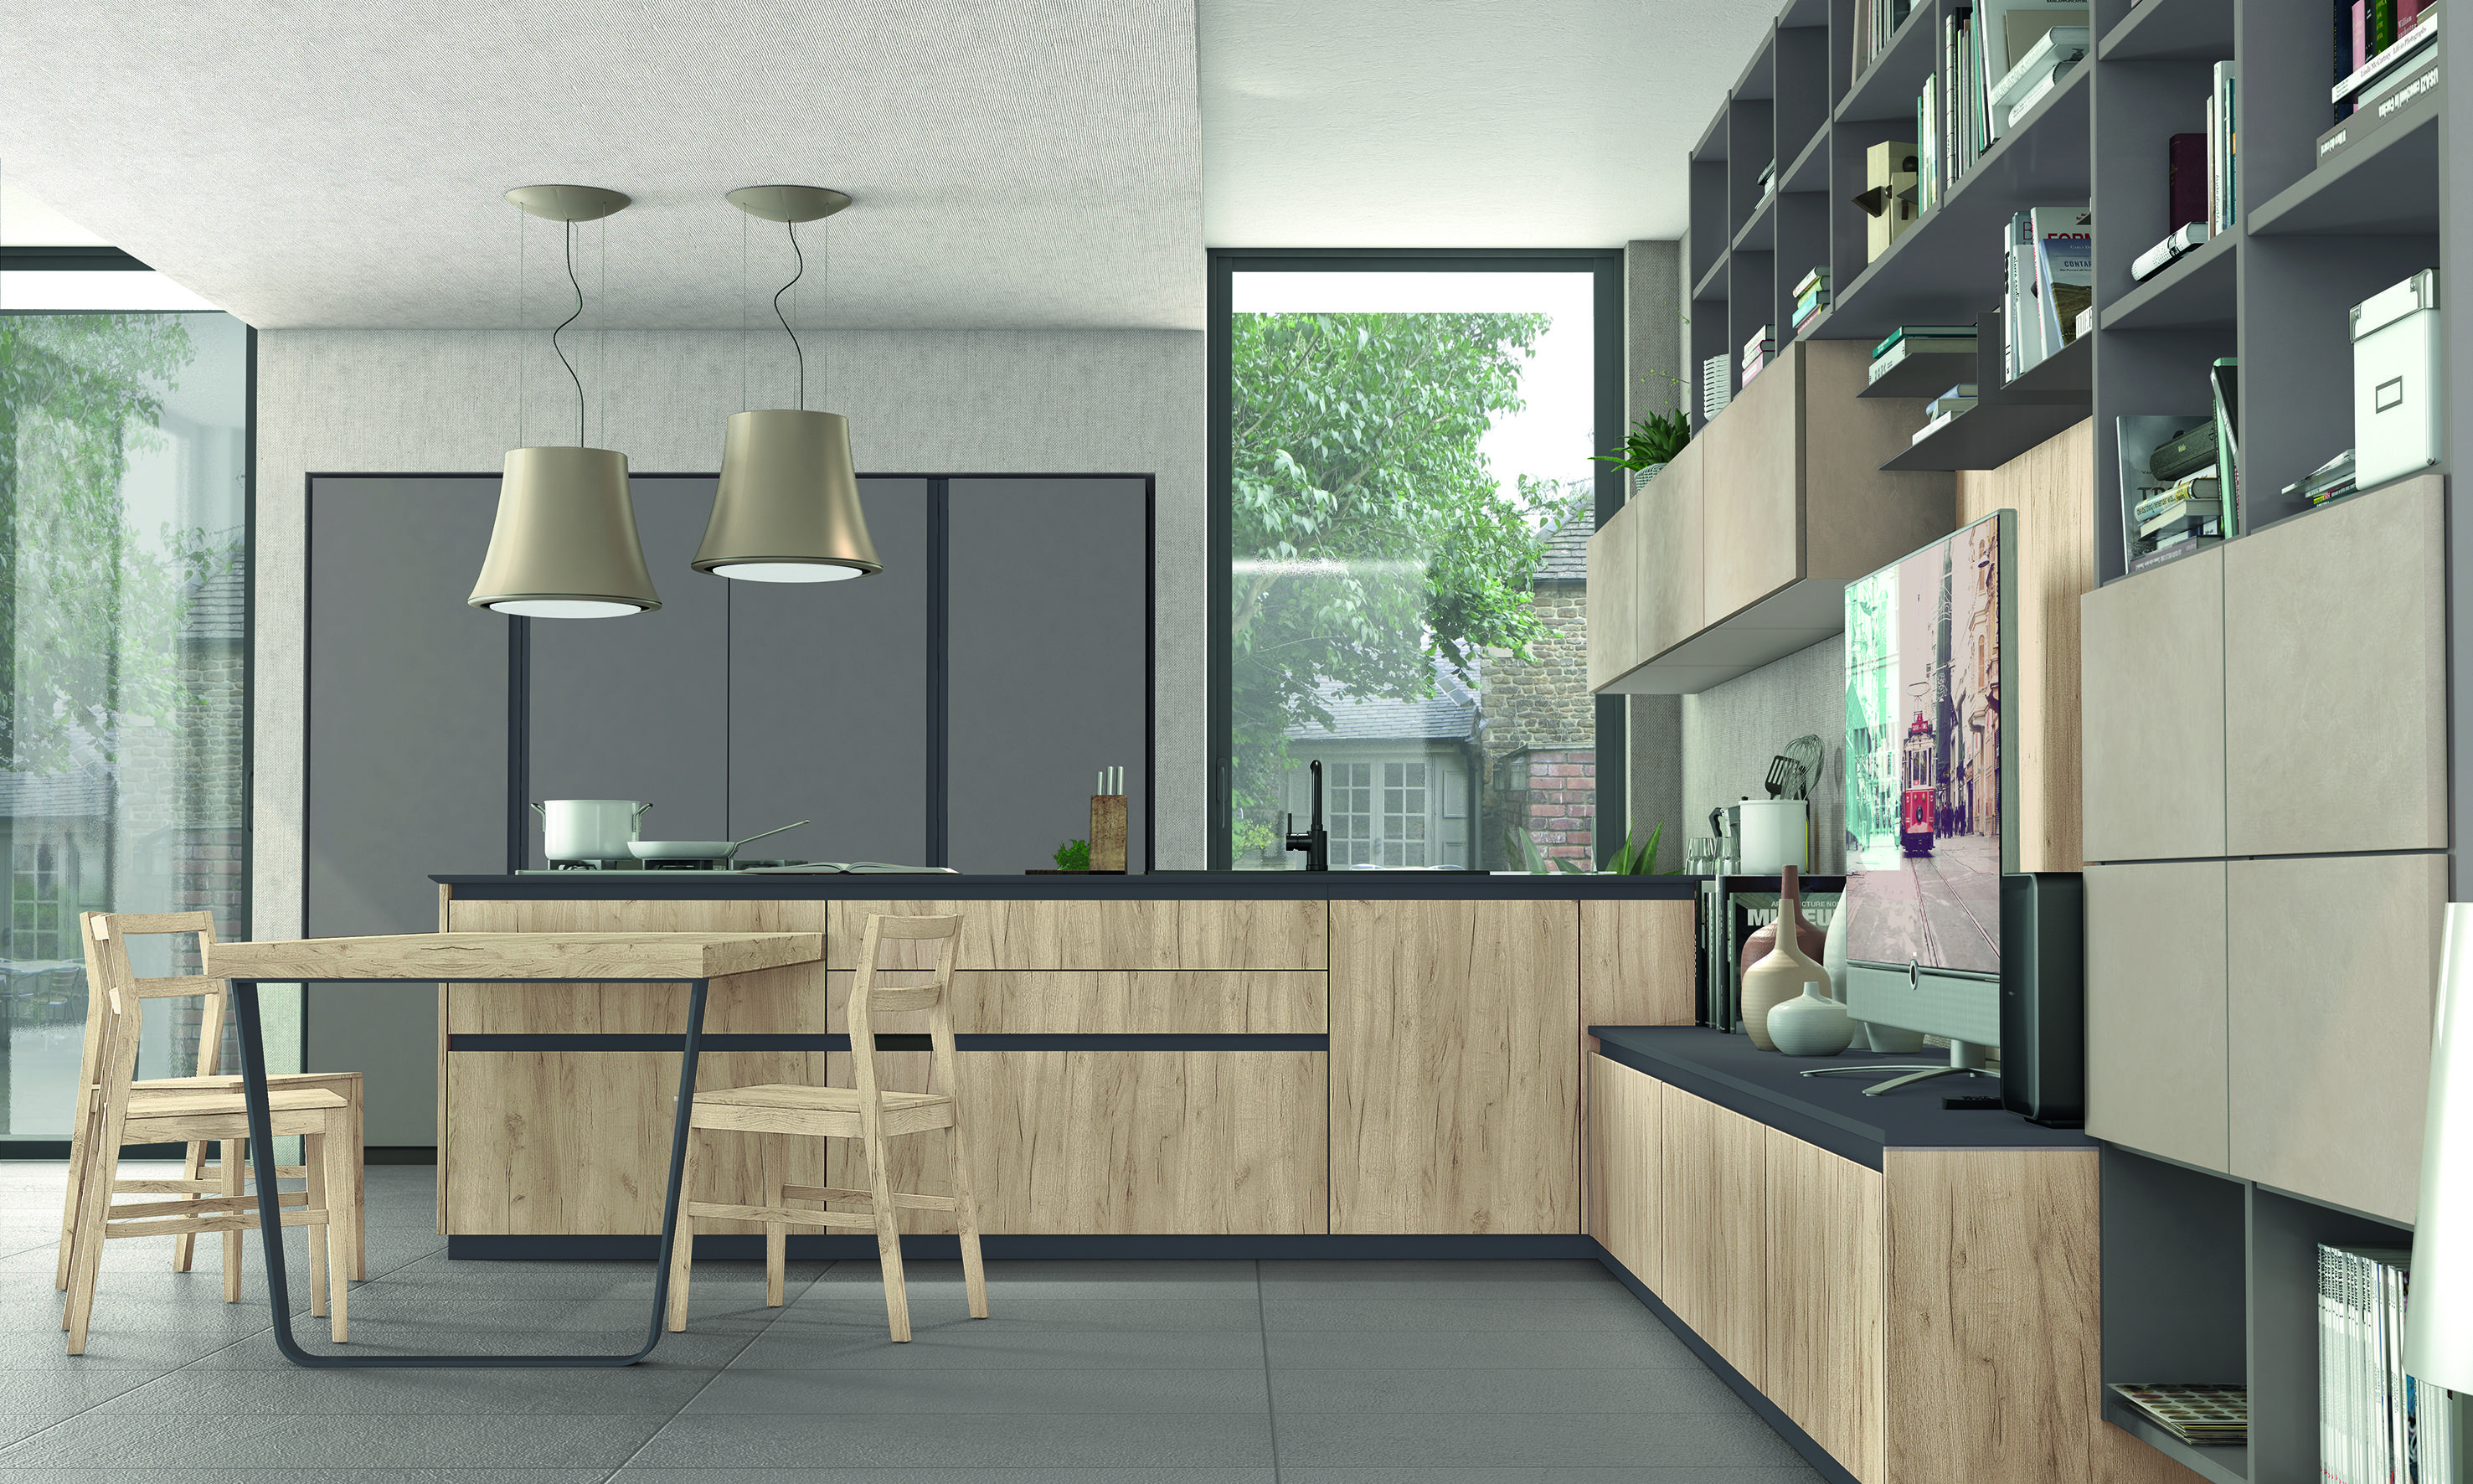 Cucine Lube Design Immagina Kitchen Designs By Cucine Lube Integrating The Living